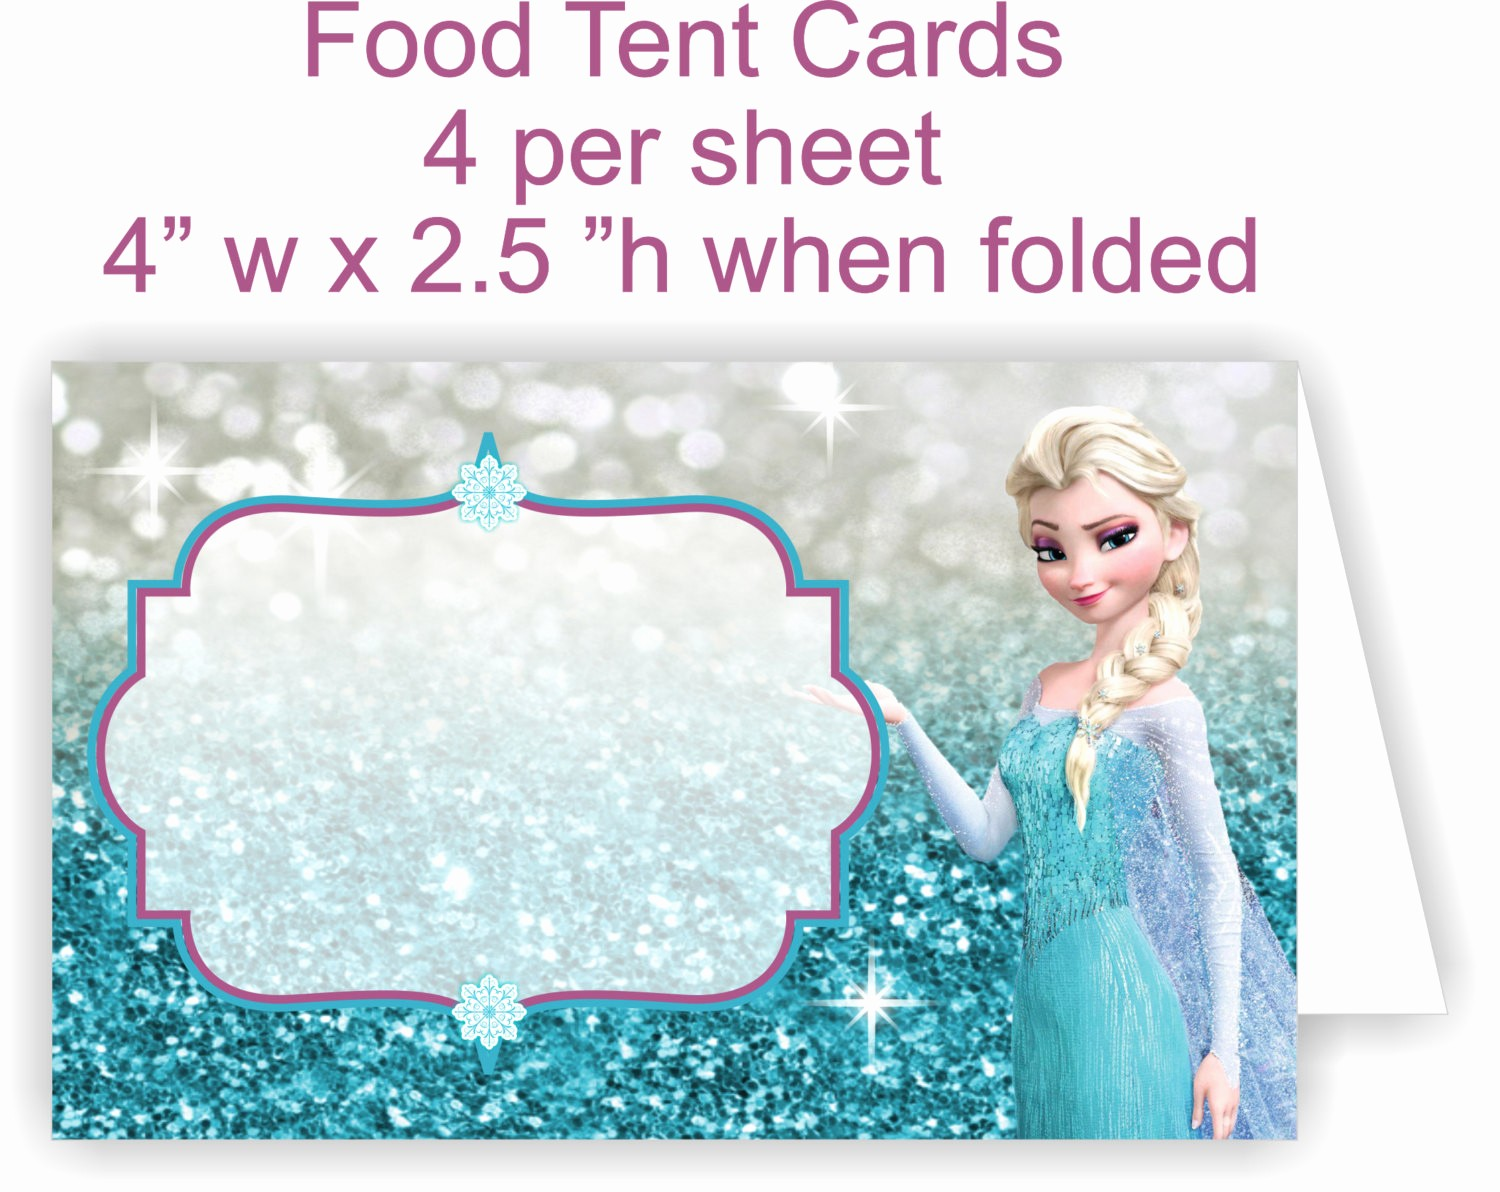 How to Print Tent Cards Luxury You Print Food Tent Cards Frozen Food Tent by Tagsruscanada